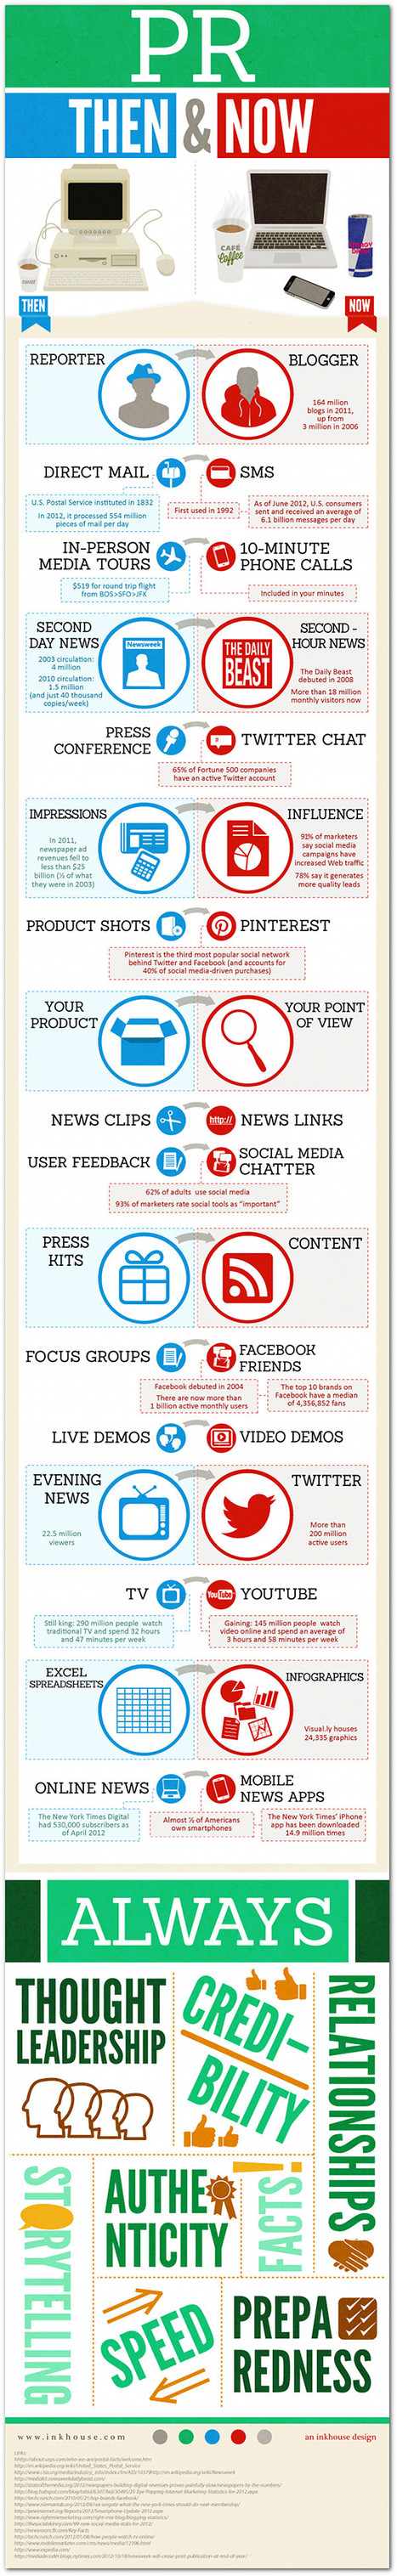 PR, Then And Now [INFOGRAPHIC] | Better know and better use Social Media today (facebook, twitter...) | Scoop.it